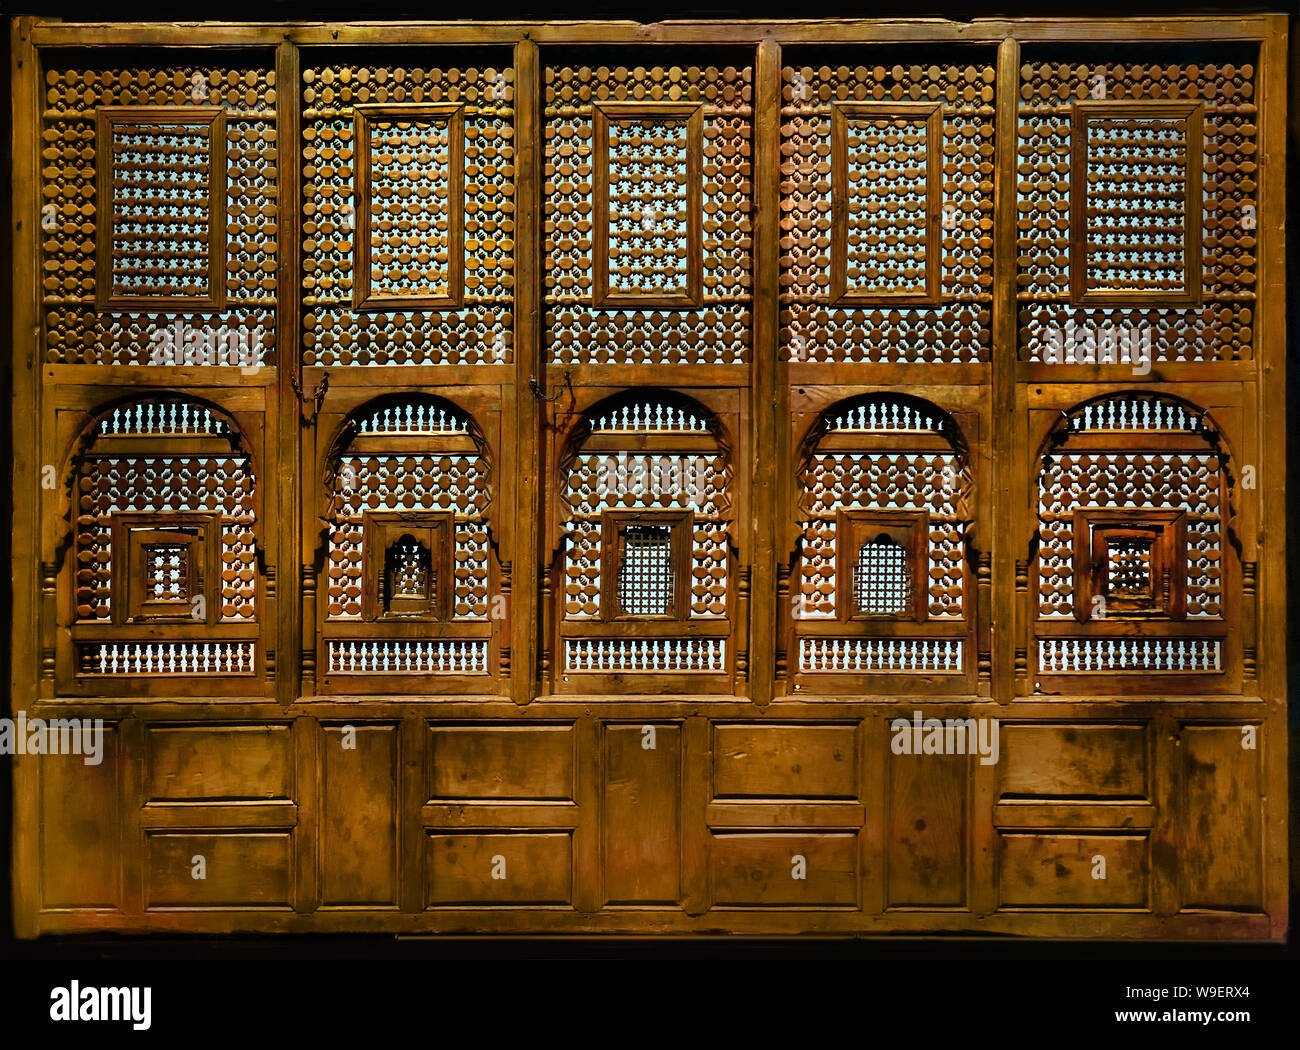 Egyptian Furniture High Resolution Stock Photography And Images Alamy